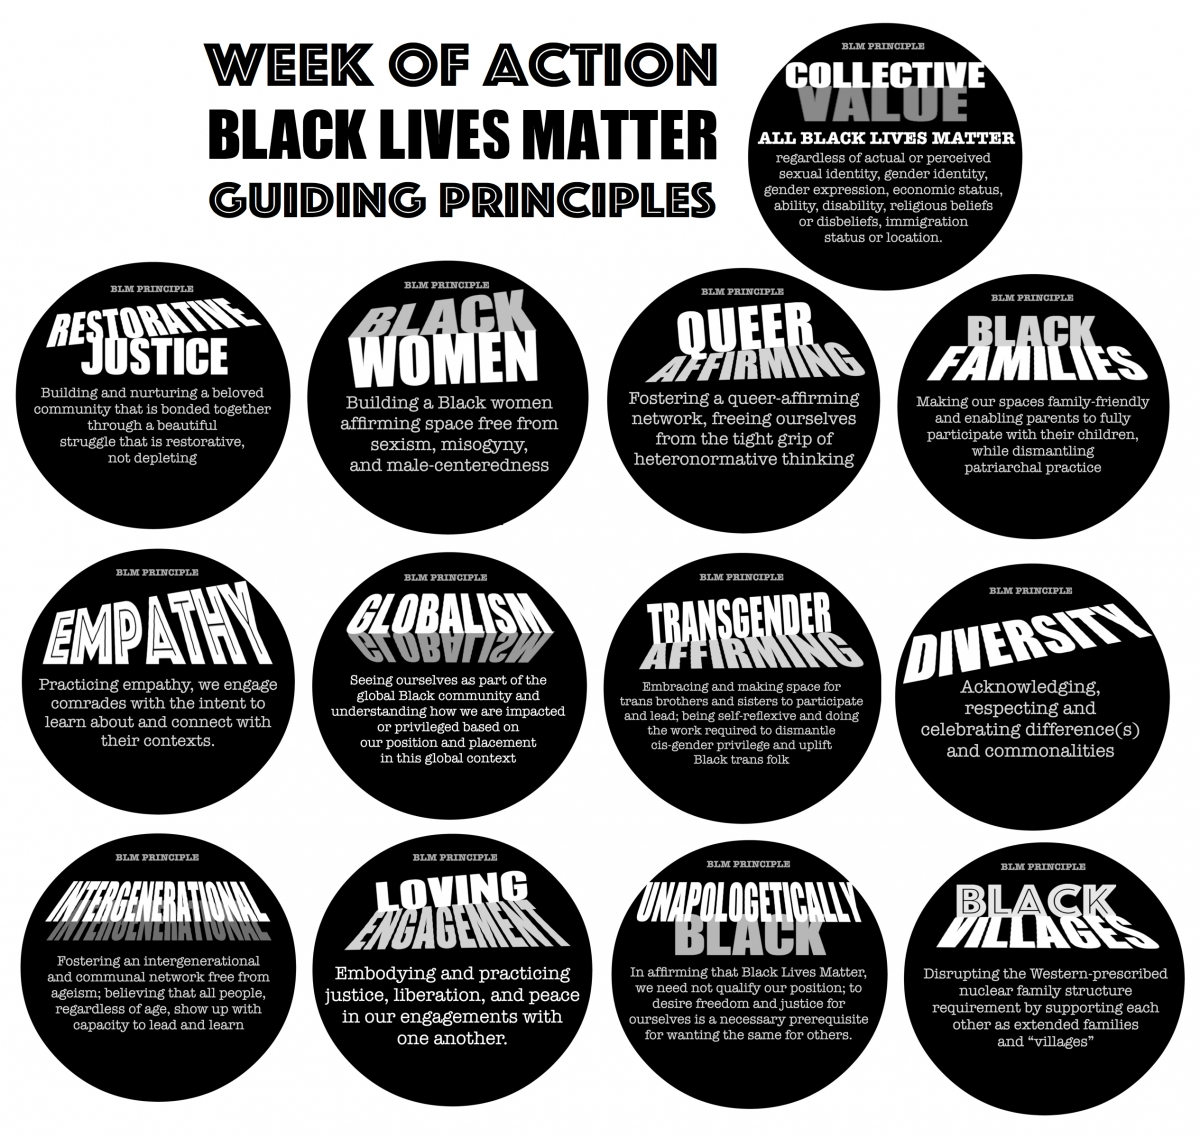 week of action BLM guiding principles